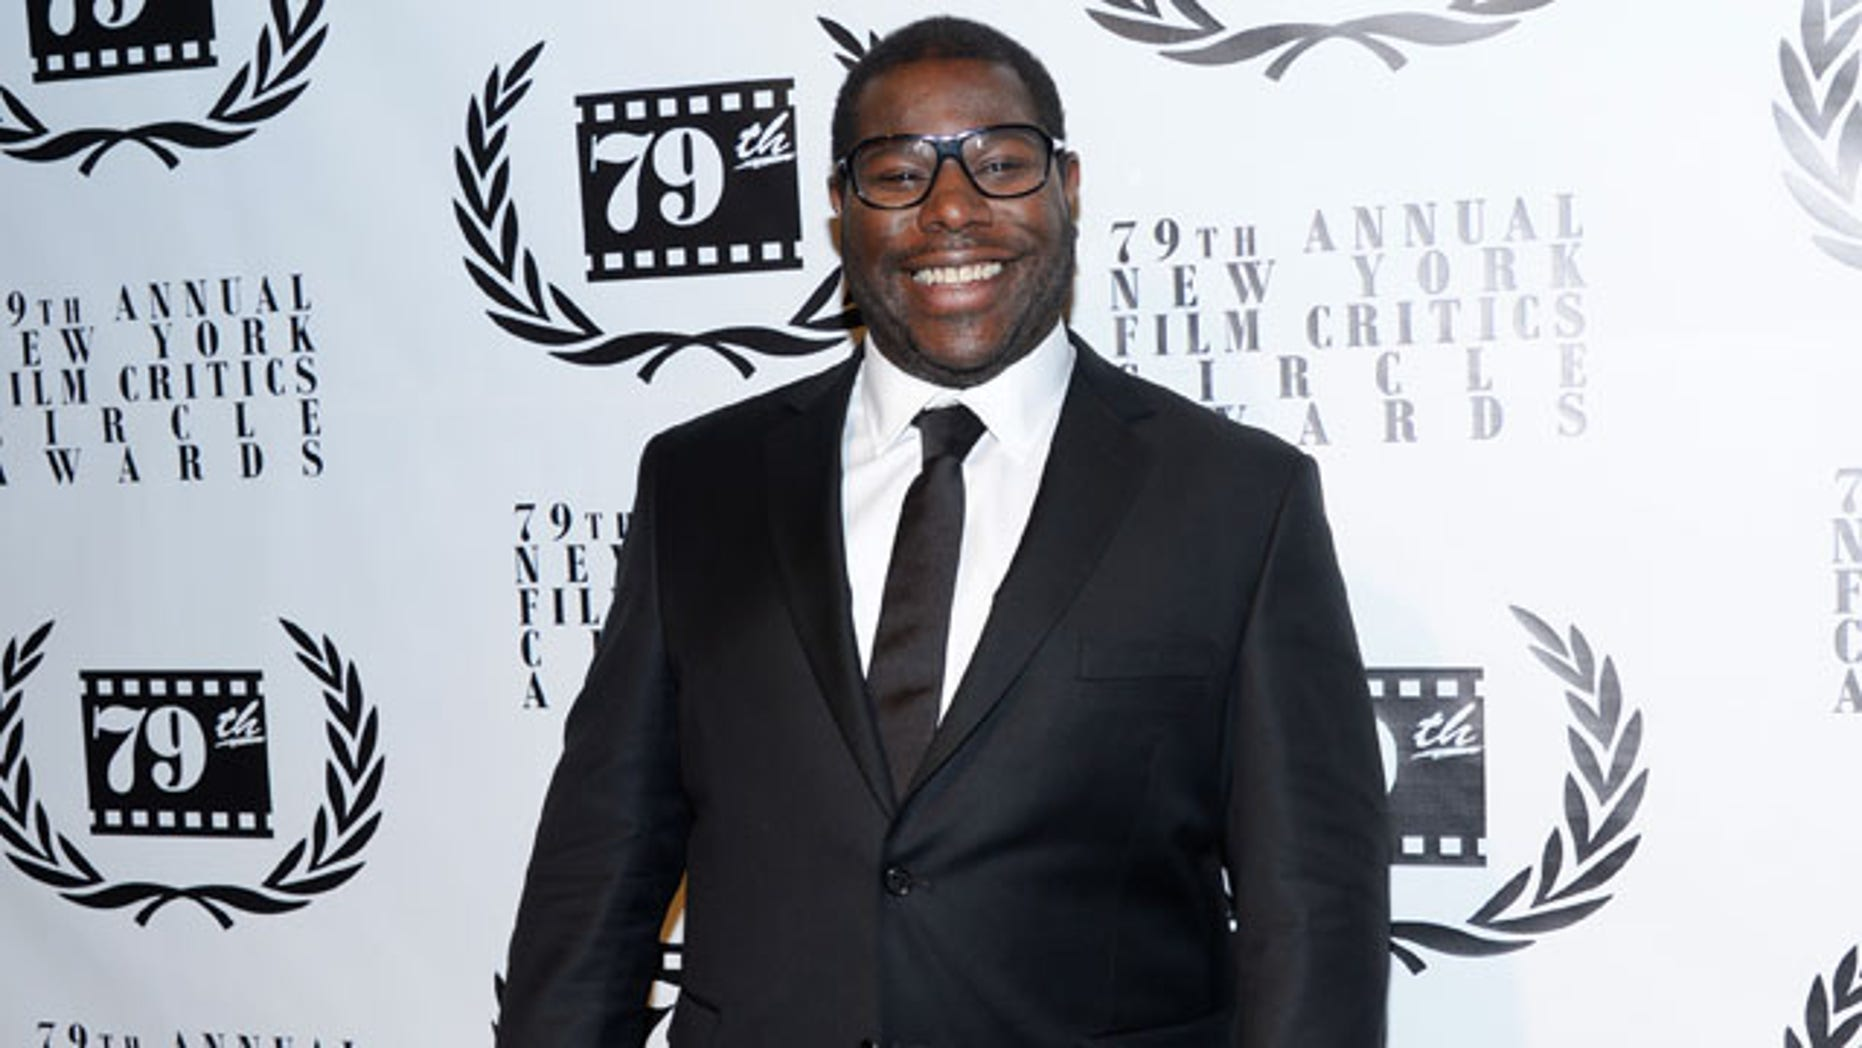 January 6, 2014: Best Director winner Steve McQueen attends the 79th Annual New York Film Critics Circle Awards at the Edison Ballroom in New York. (Photo by Evan Agostini/Invision/AP)